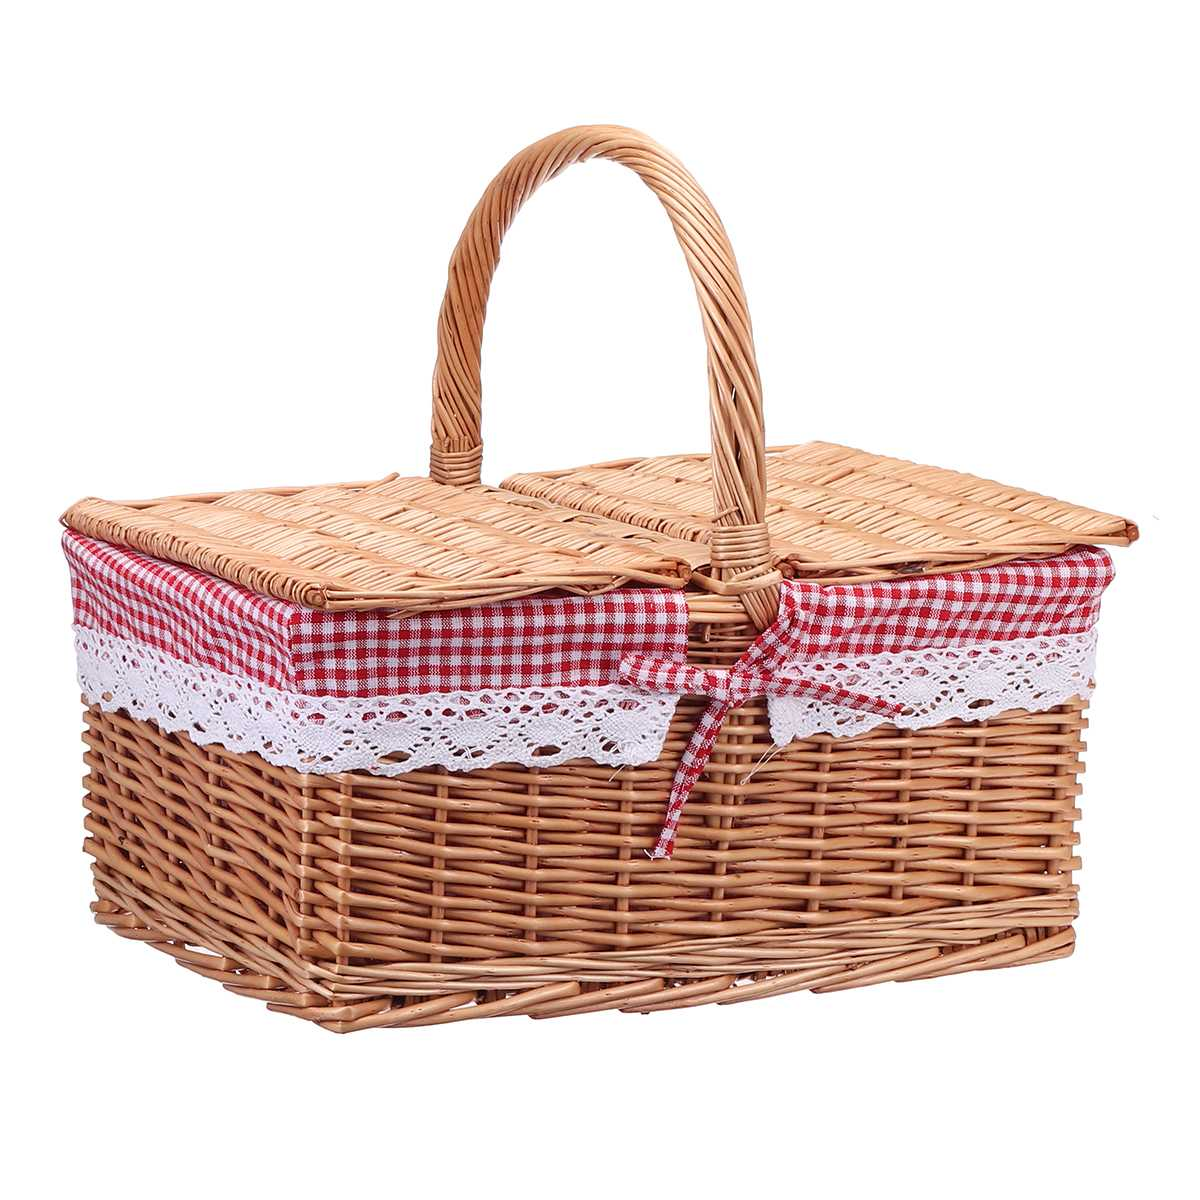 Square Wicker Willow Picnic Basket Hamper Shopping Basket Bag with Lid and Floral Liner for Outdoor Camping Picnic 40*30*20cm|Picnic Bags|   - AliExpress